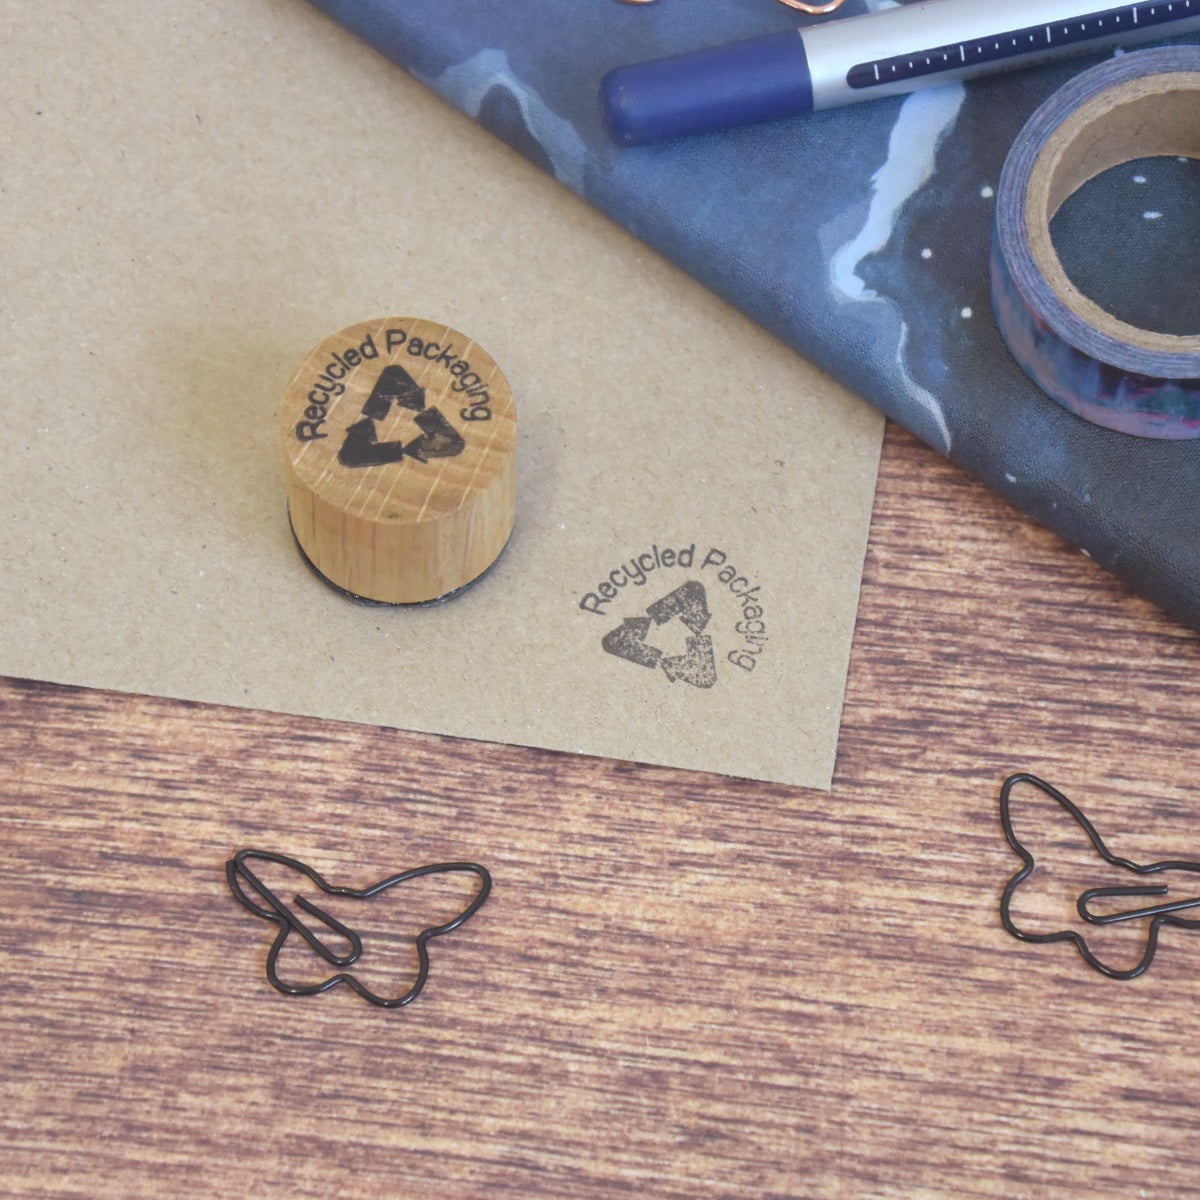 Recycled Packaging Mini Stamp